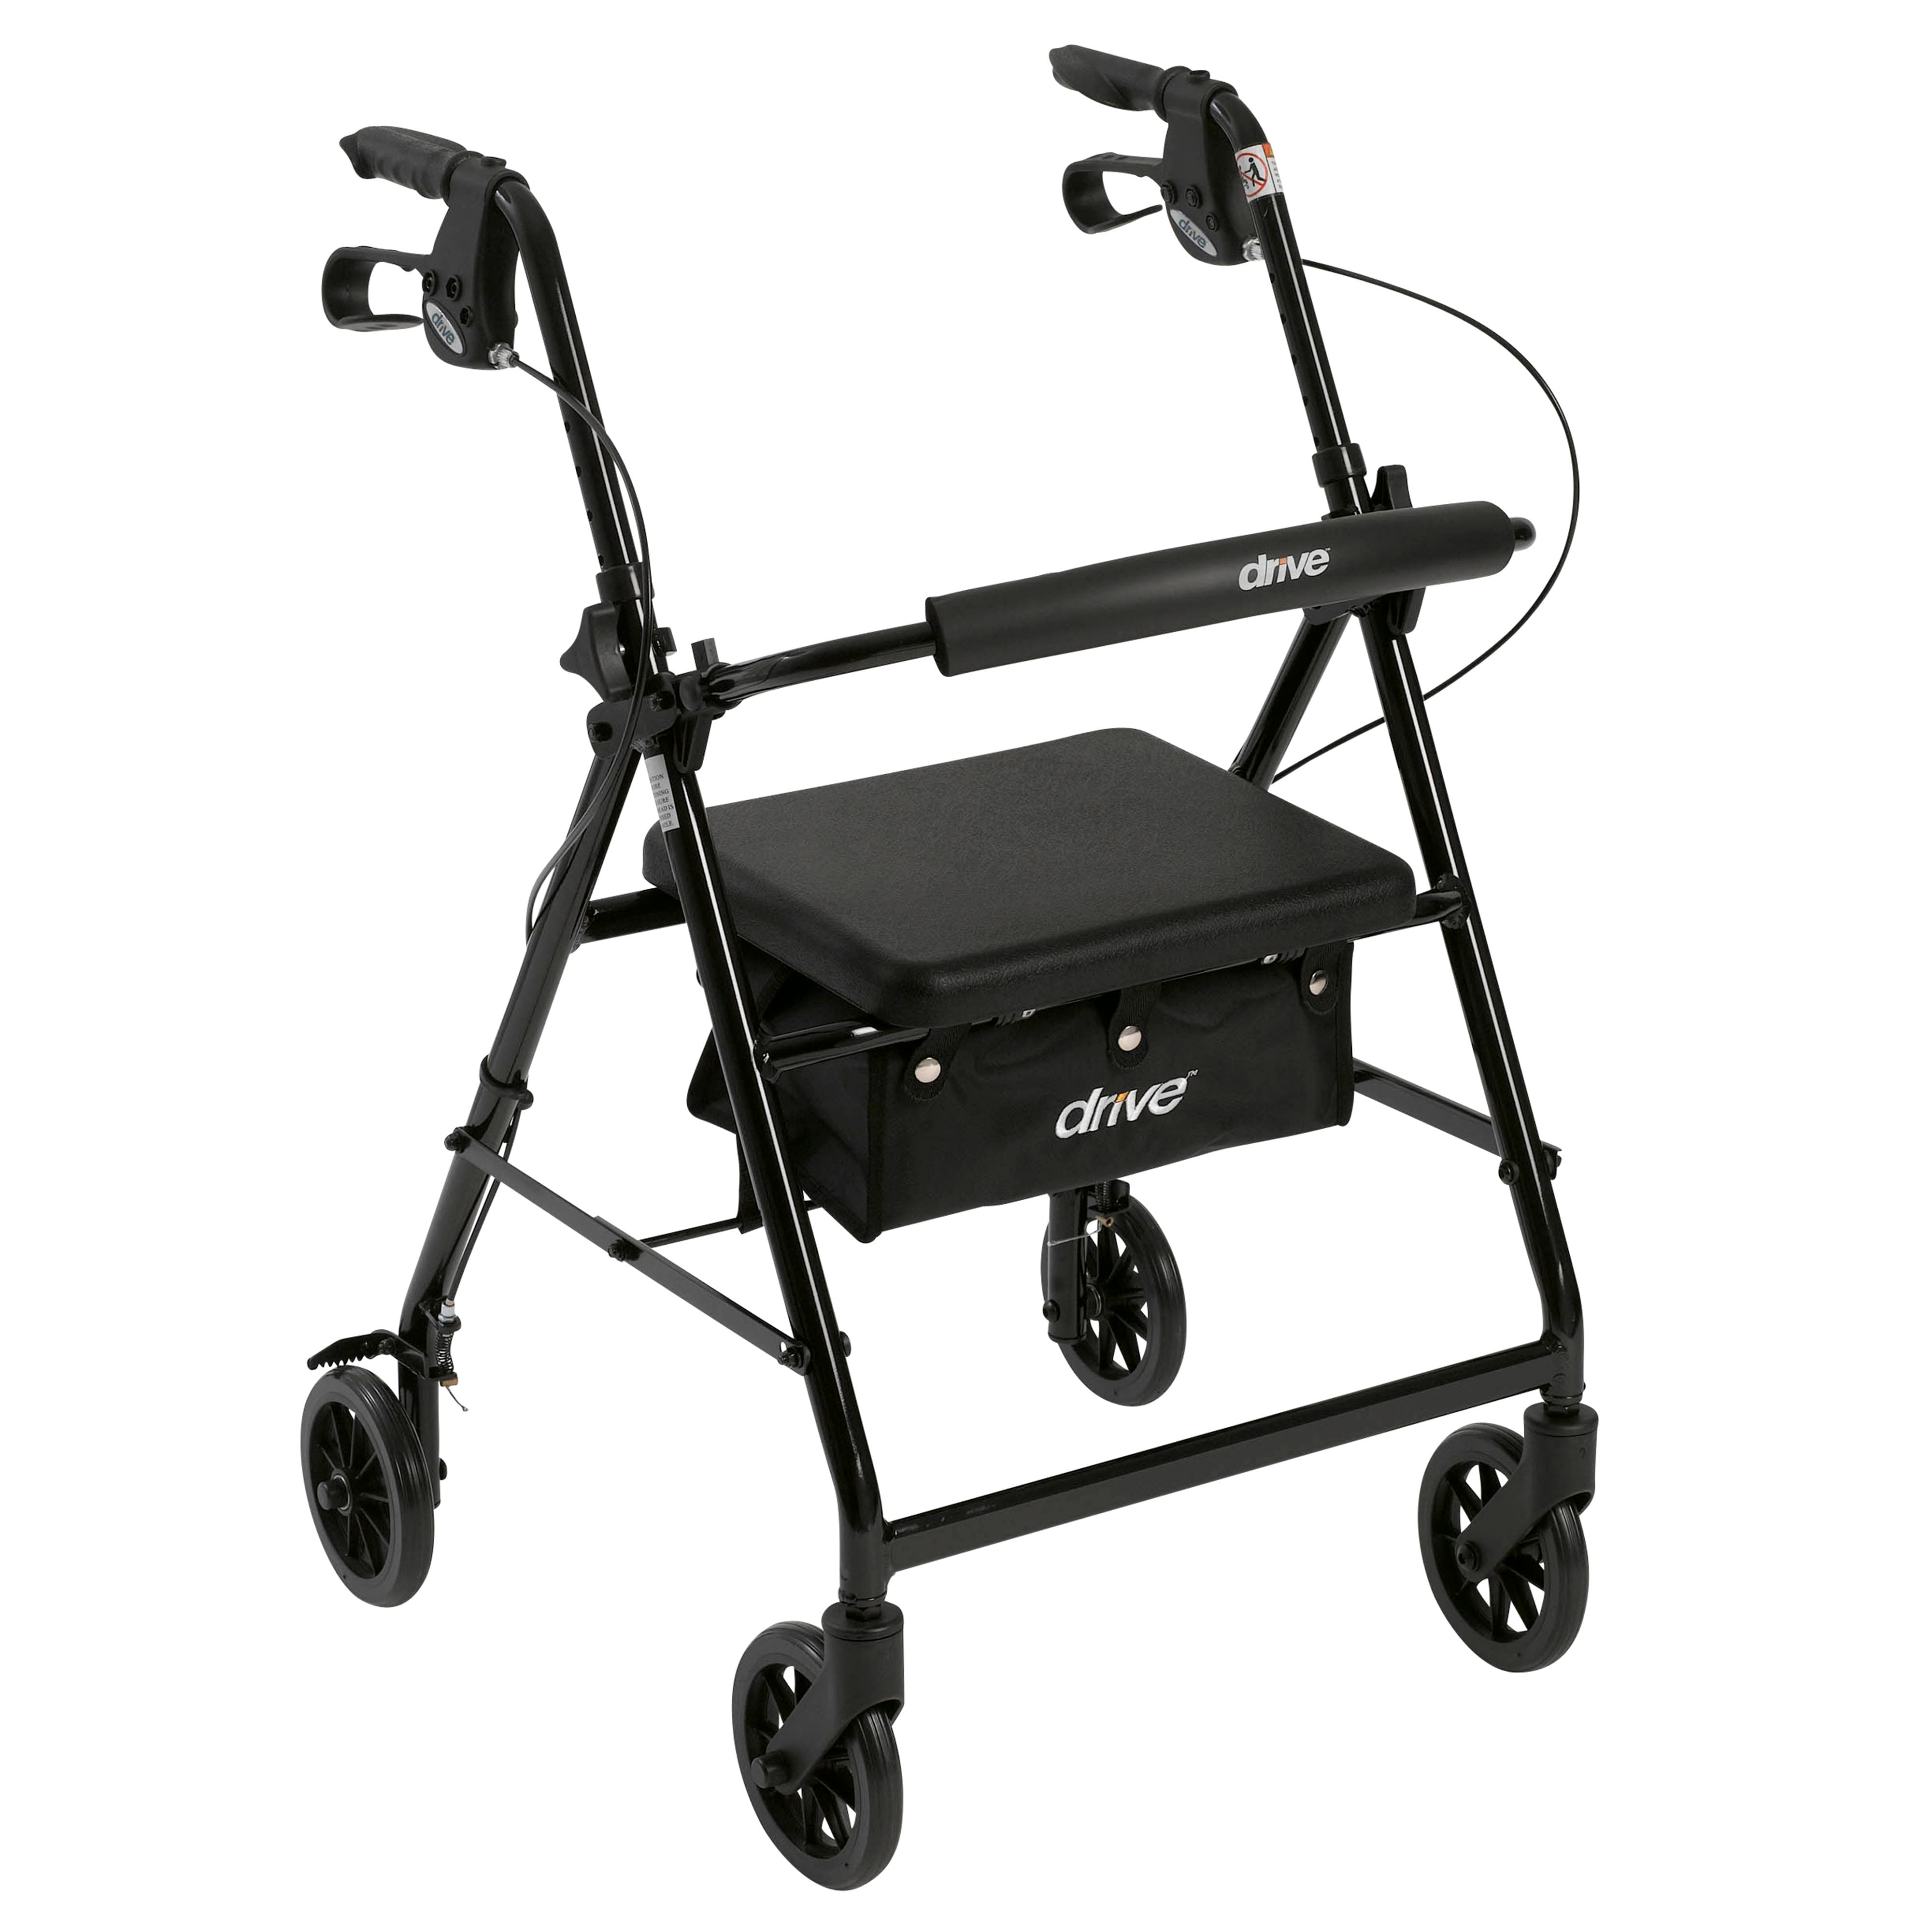 Drive Medical Rollator Rolling Fold-up Walker with Back Support & Padded Seat (black)  $43.65 + Free shipping